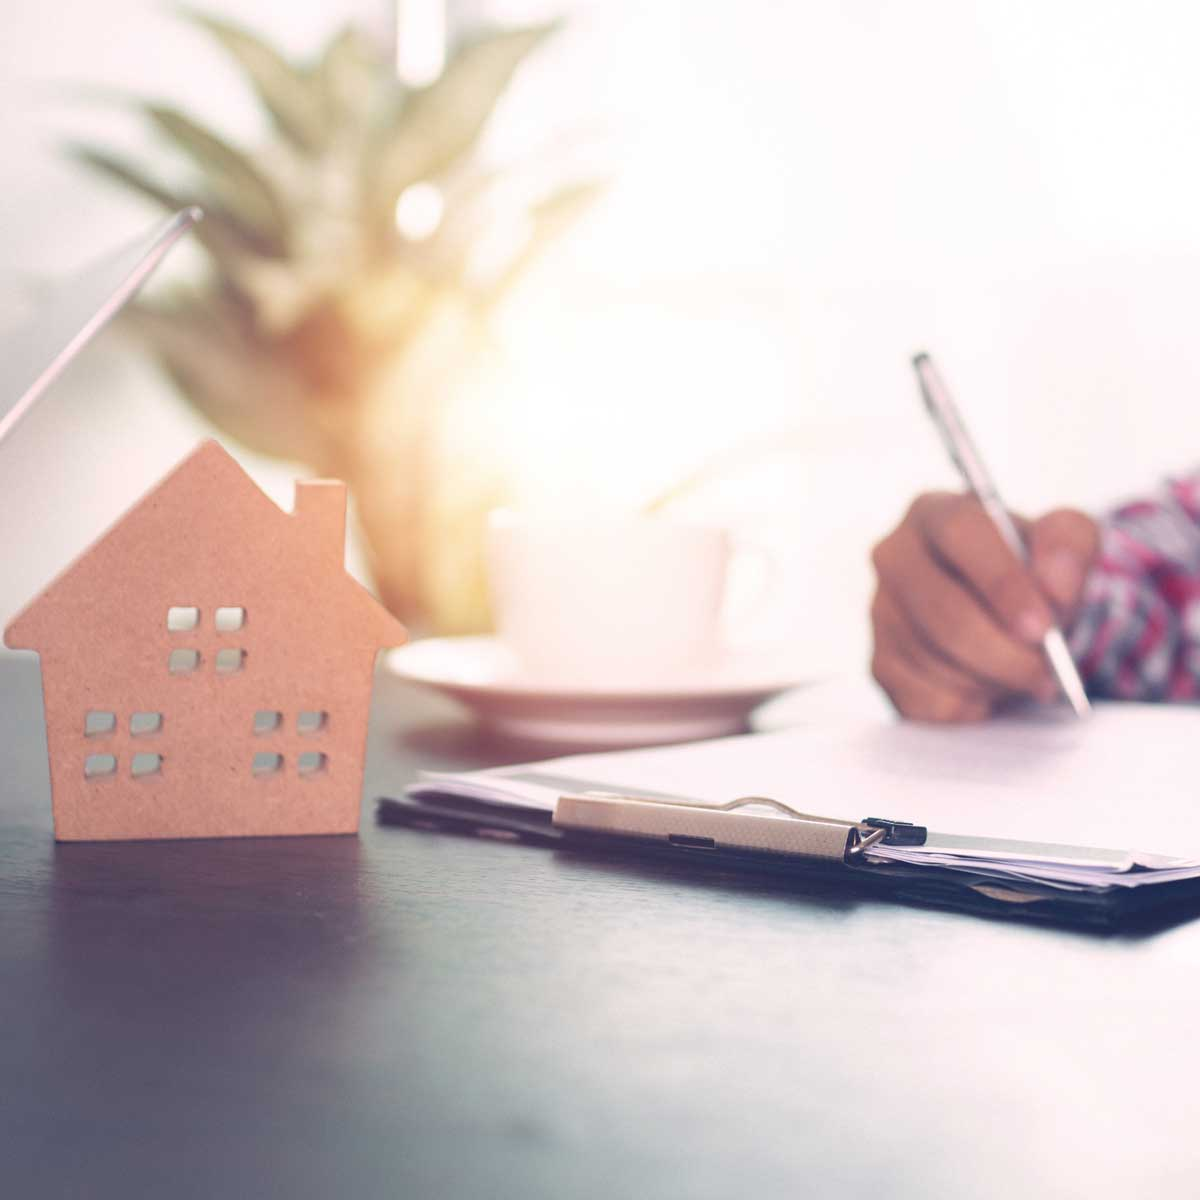 Home model with money on table with agency signing to approve for real estate background